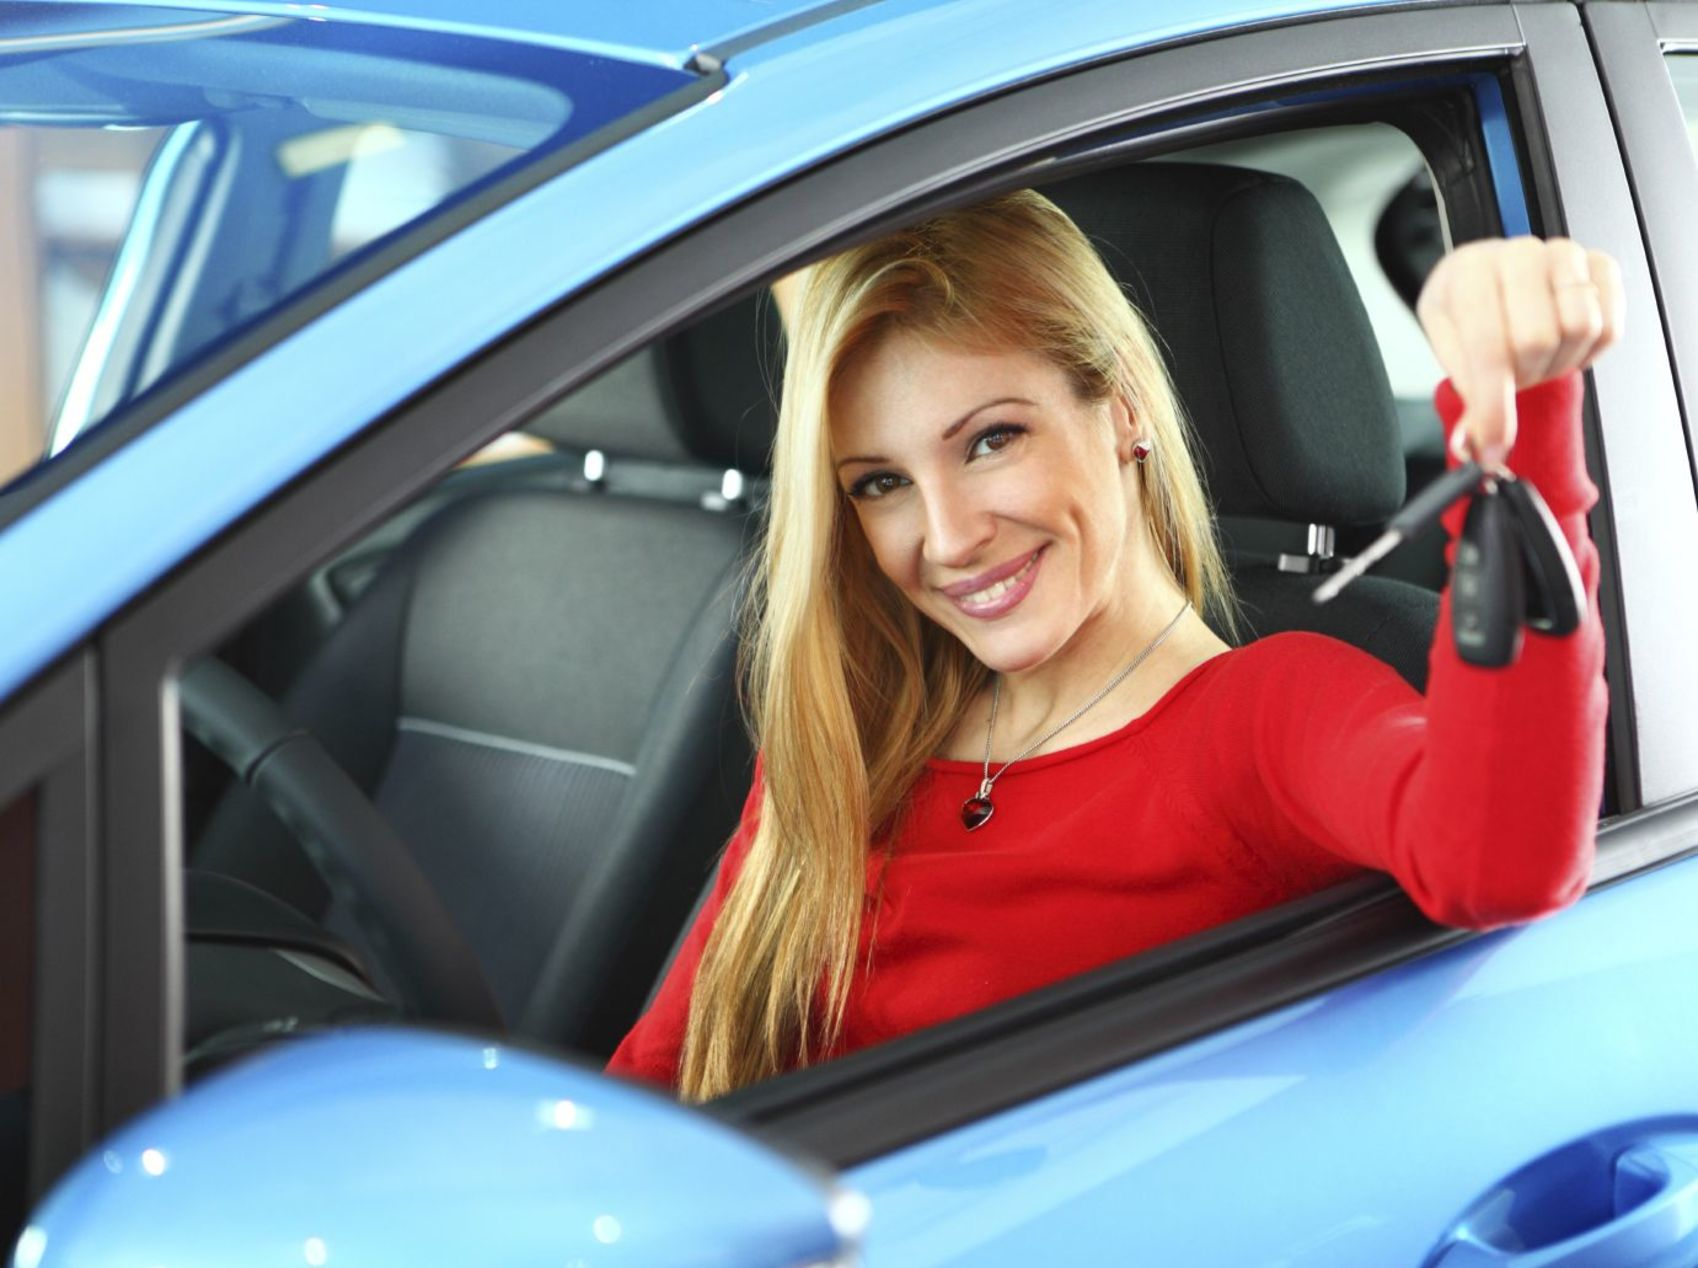 Used Cars for Sale by Owner Elegant One Owner Used Cars for Sale In Youngstown Oh Sweeney Chevrolet